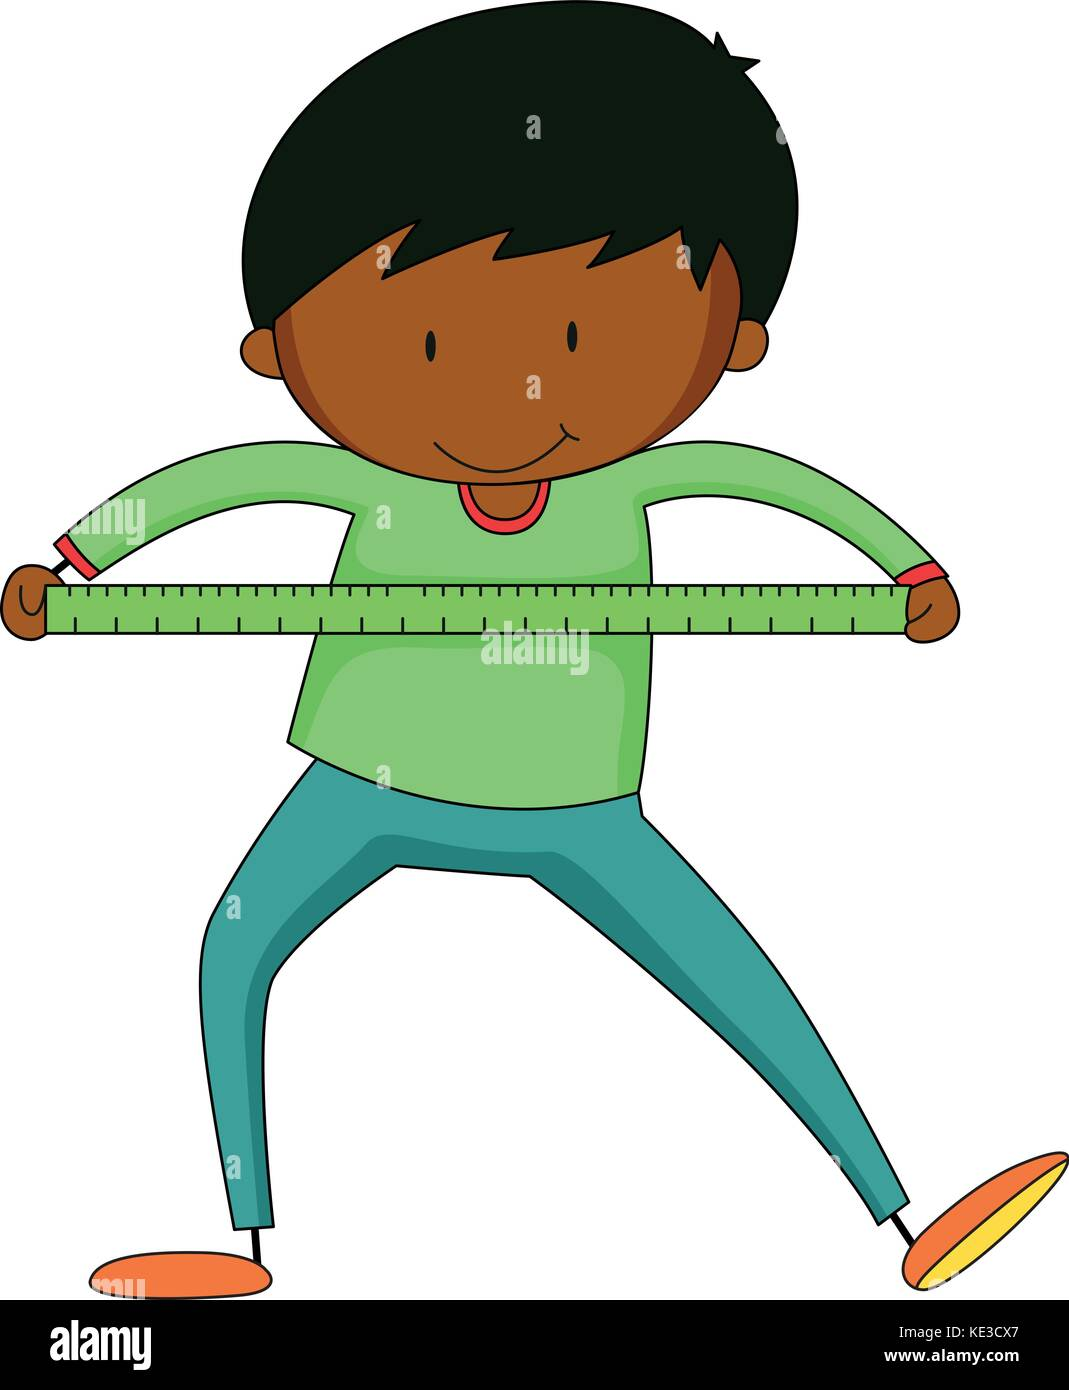 Little boy measuring with ruler illustration - Stock Vector